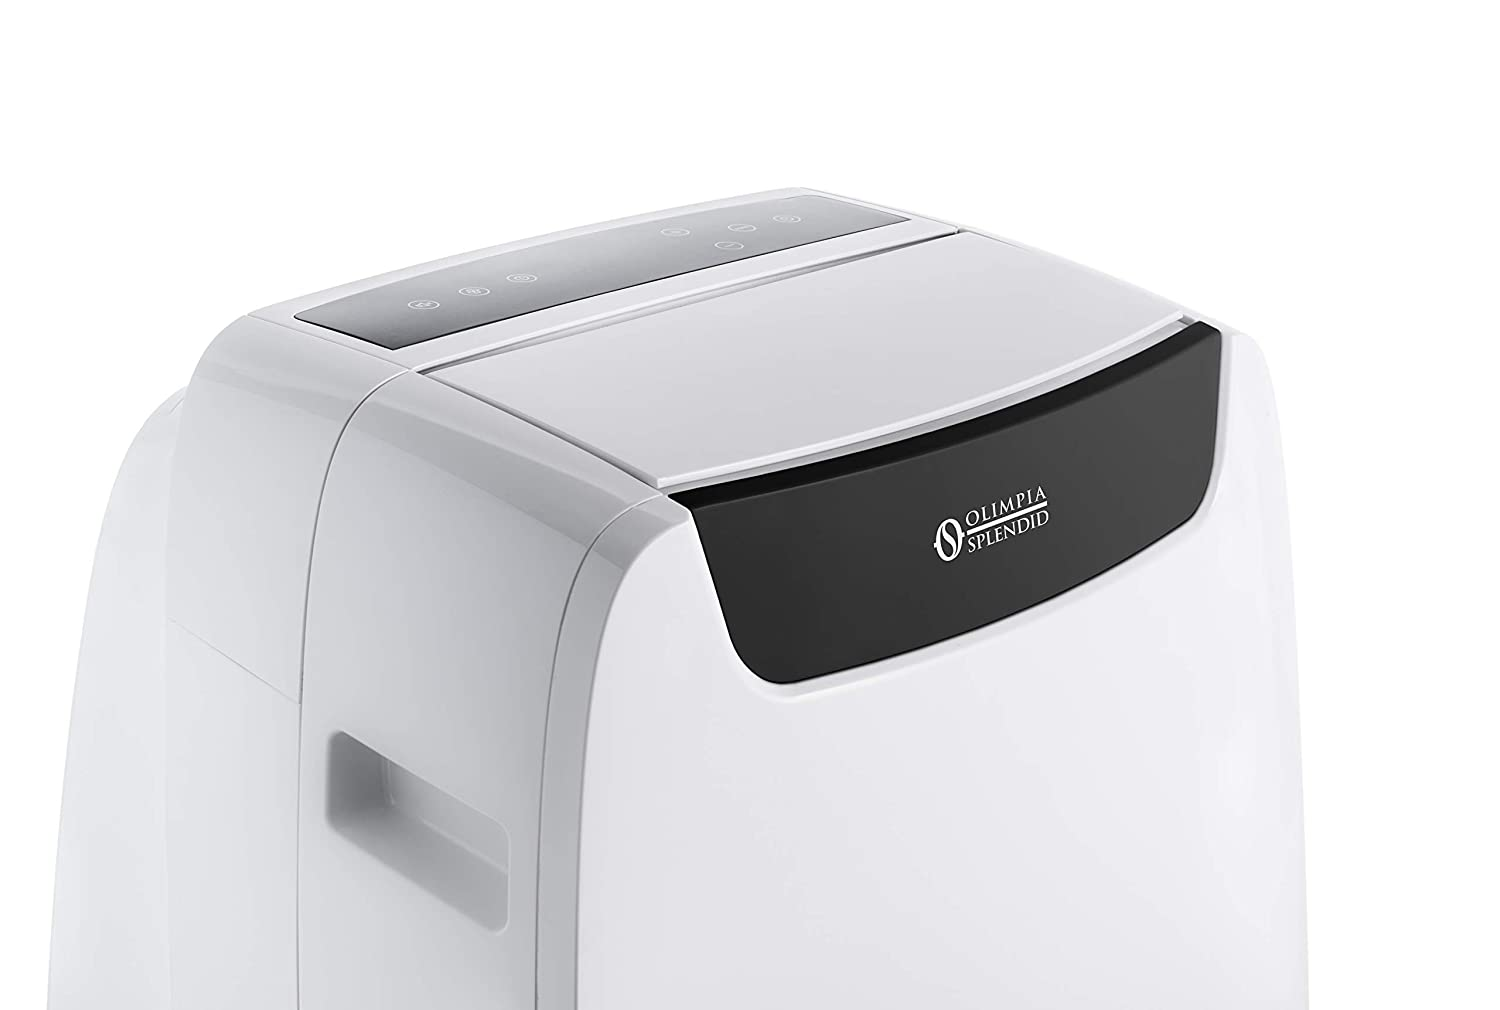 Olimpia Splendid 01916 Dolceclima Air Pro 13 A+ Mobiles Klimager/ät 264 V EEK A+ Italienisches design 2930 W Gas R290